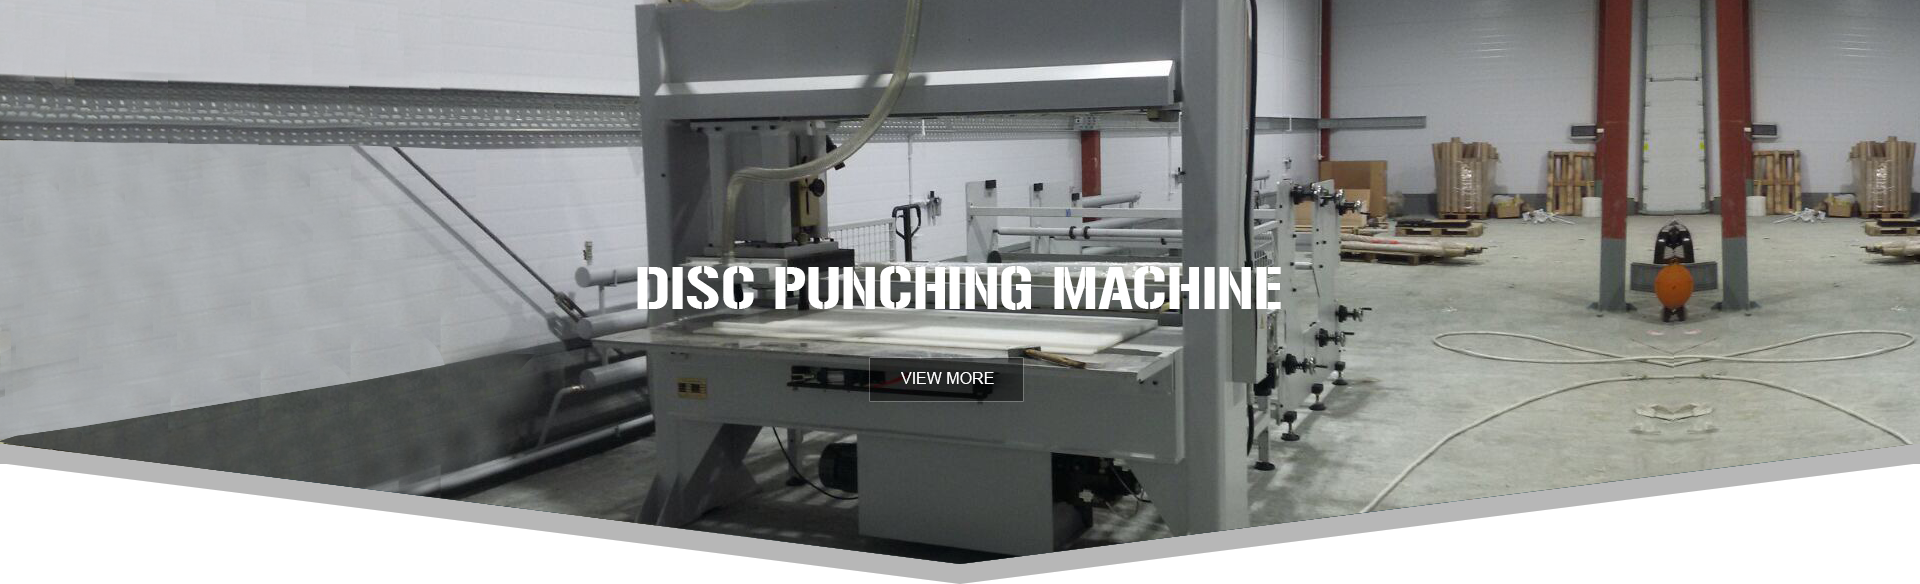 Disc Punching Machine